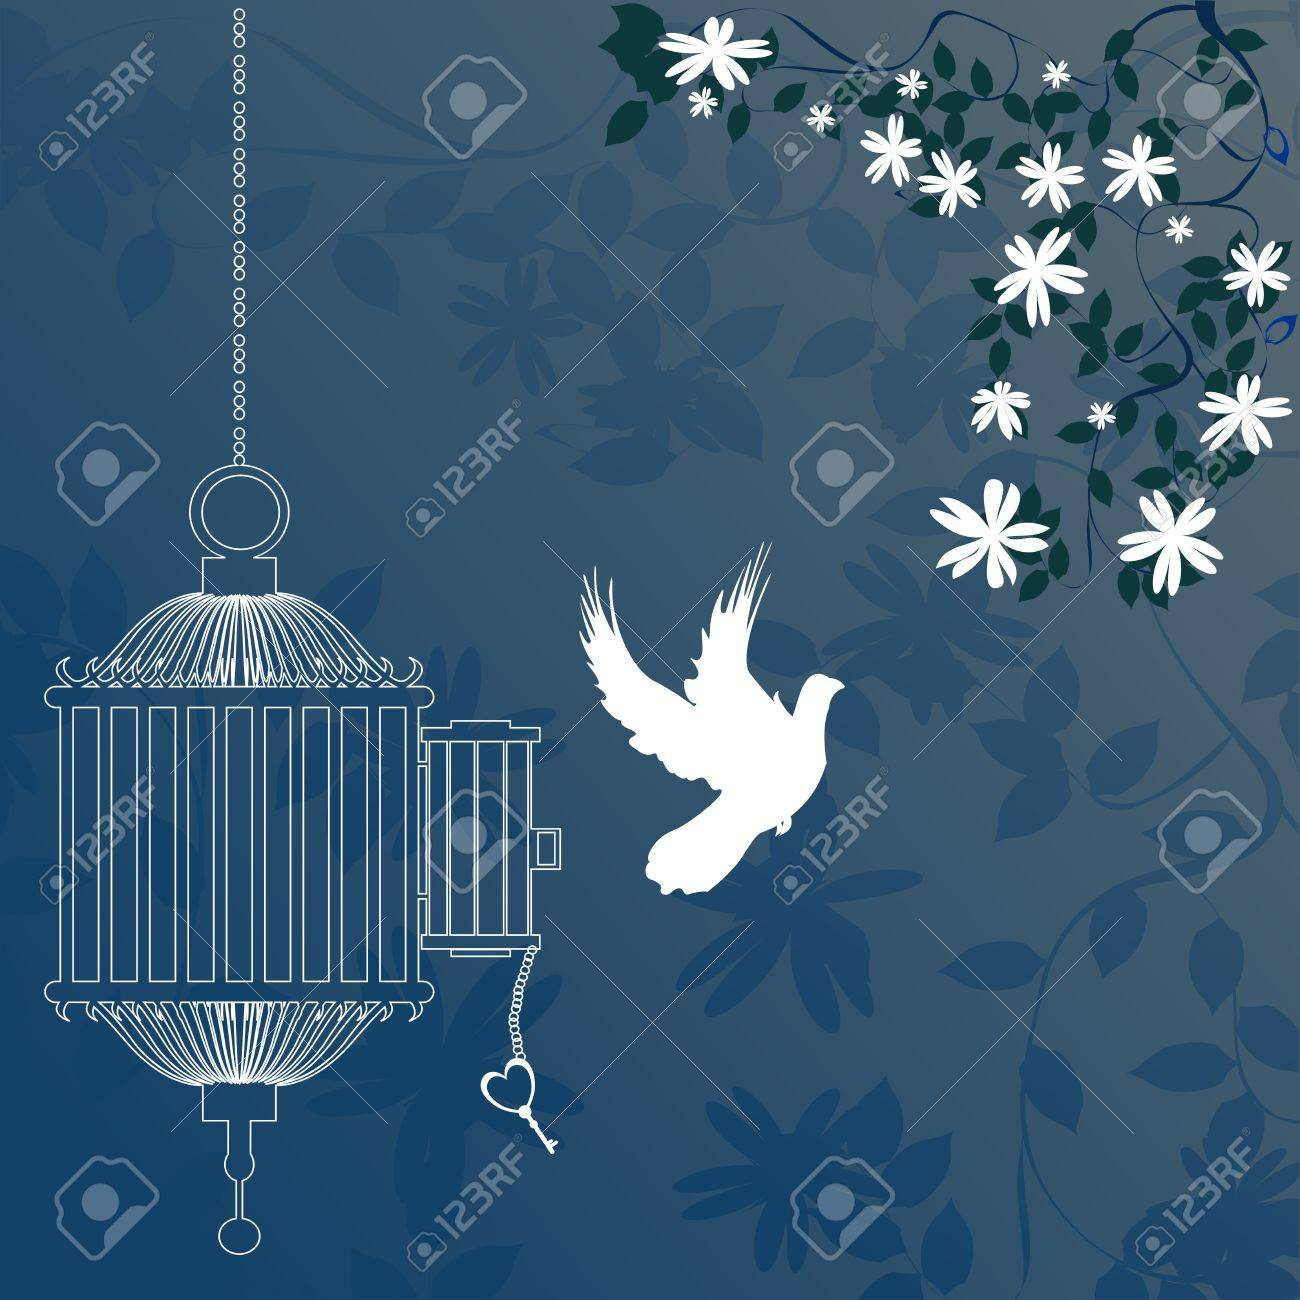 Bird and cage with cherry blossom tree Stock Photo - 7453863